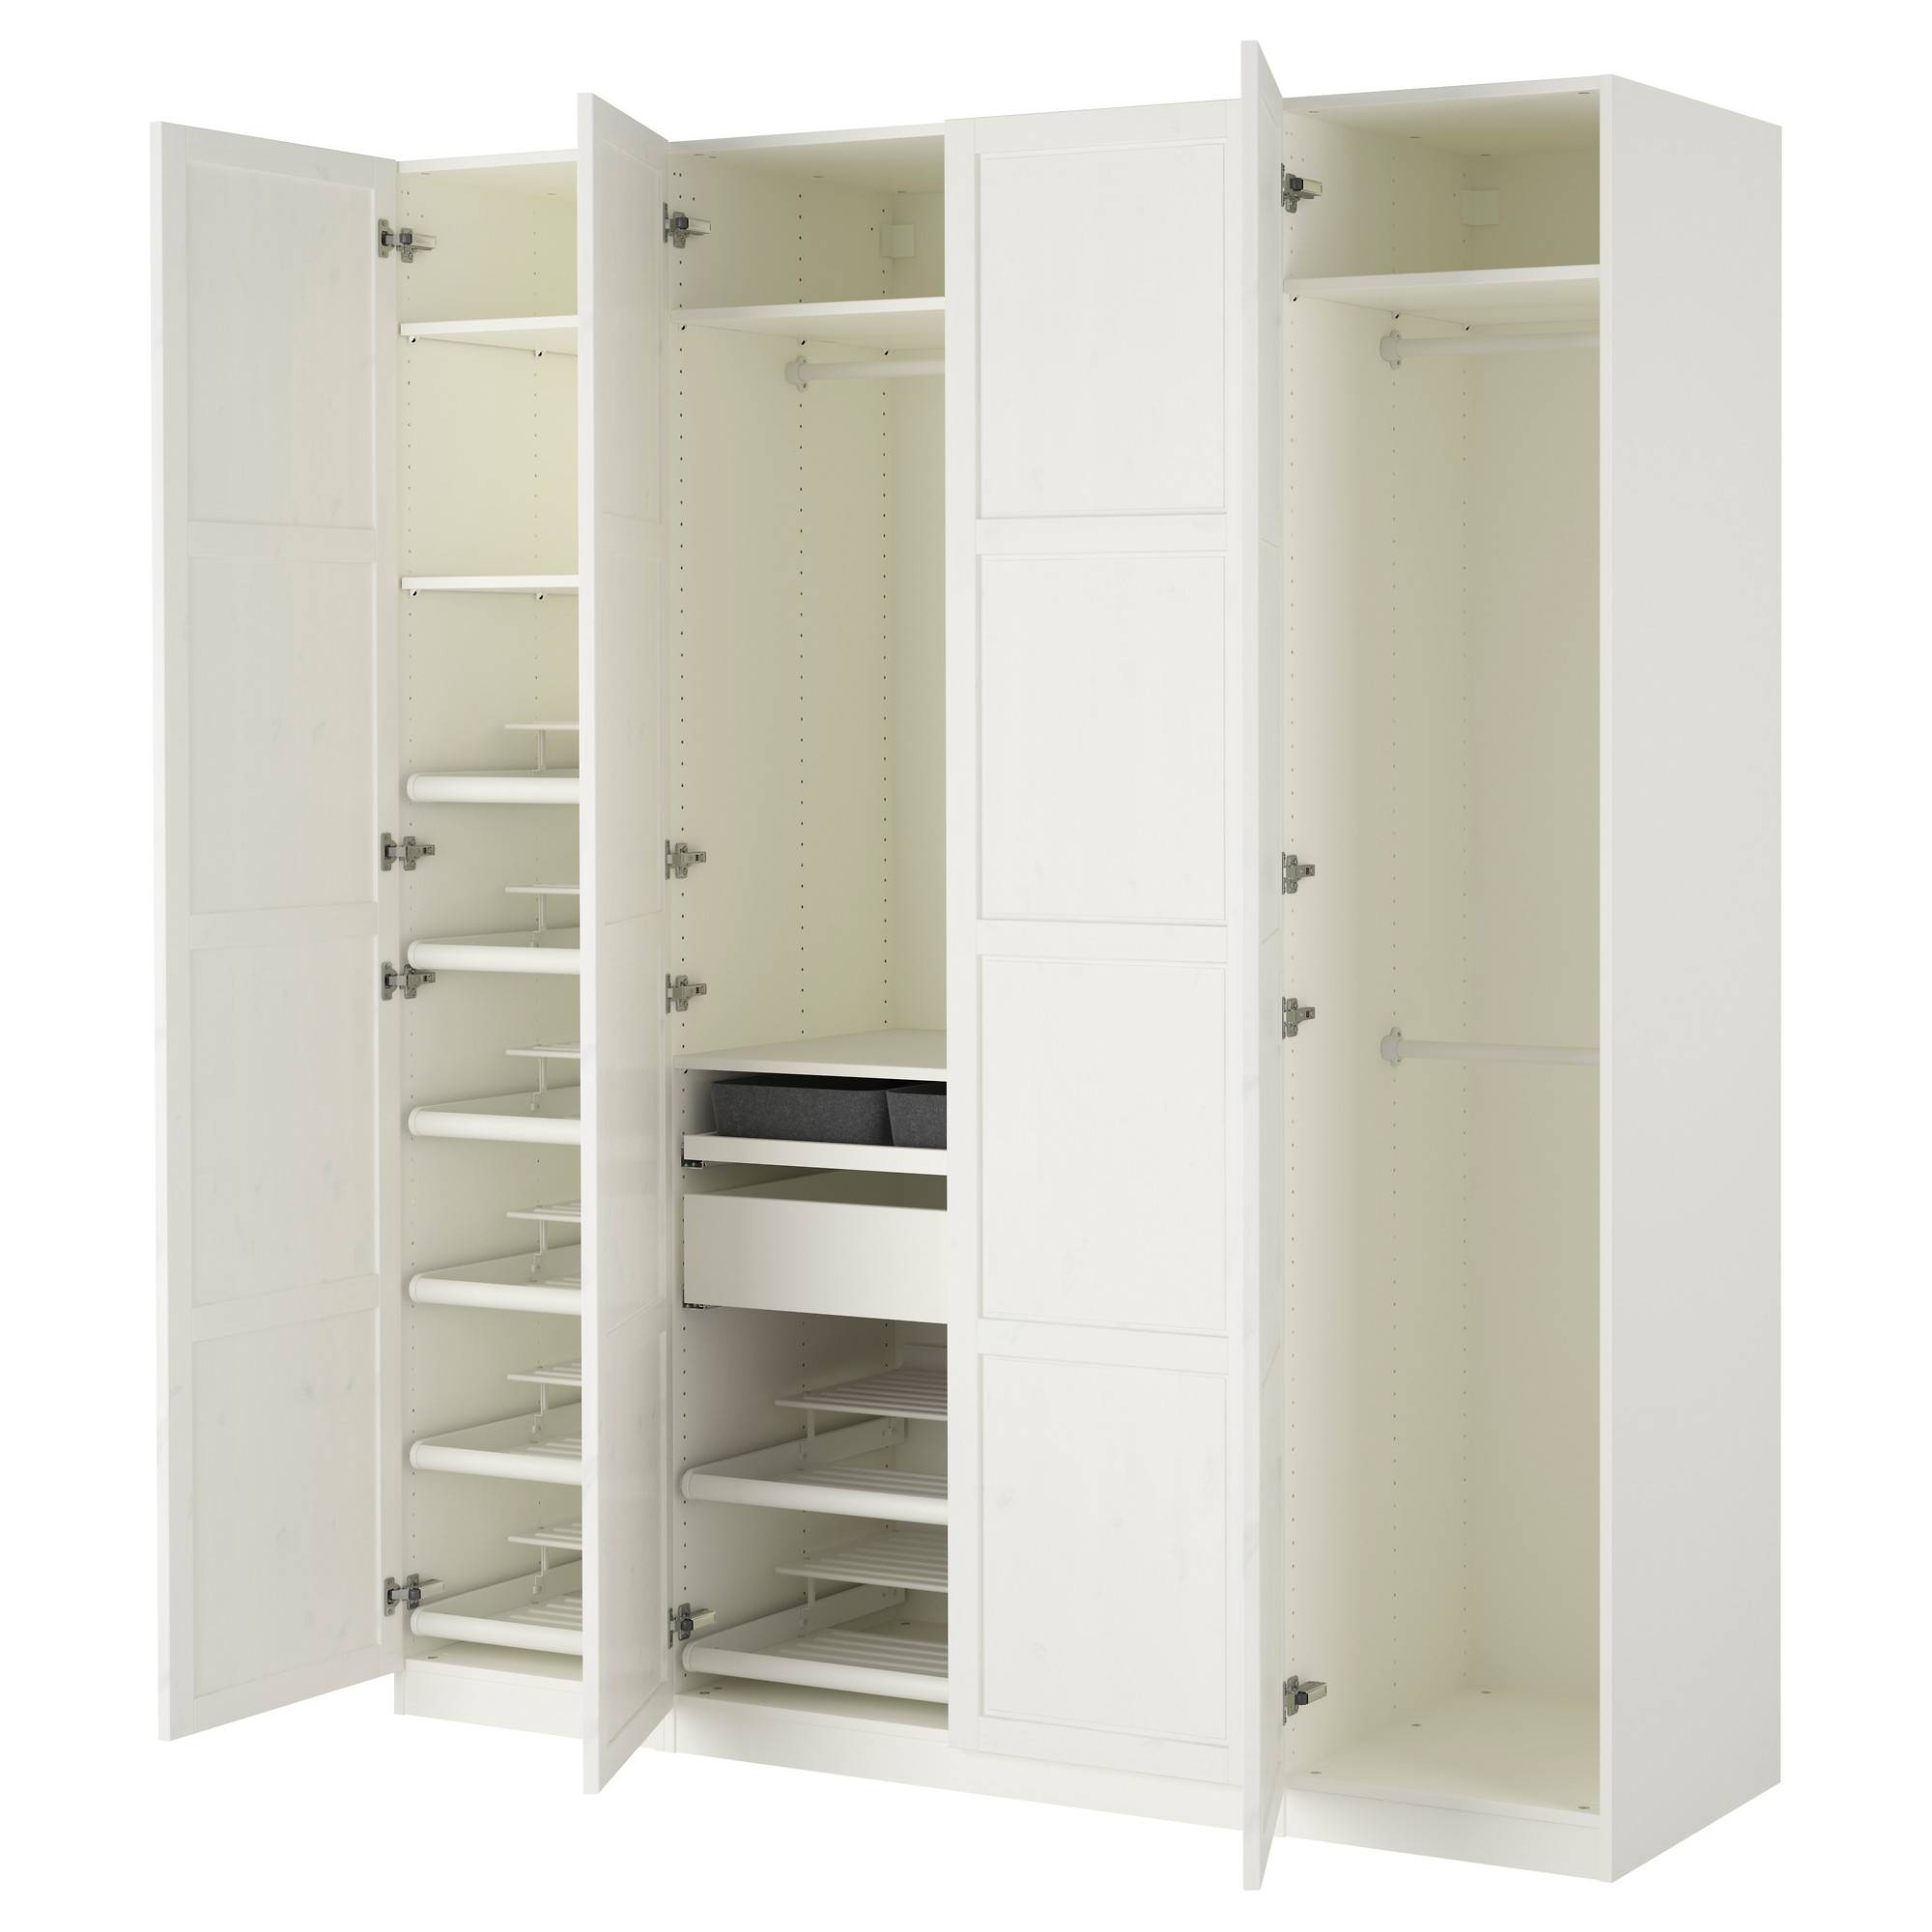 Hemnes Bedroom Series - Ikea throughout 3 Door Wardrobe With Drawers and Shelves (Image 15 of 30)